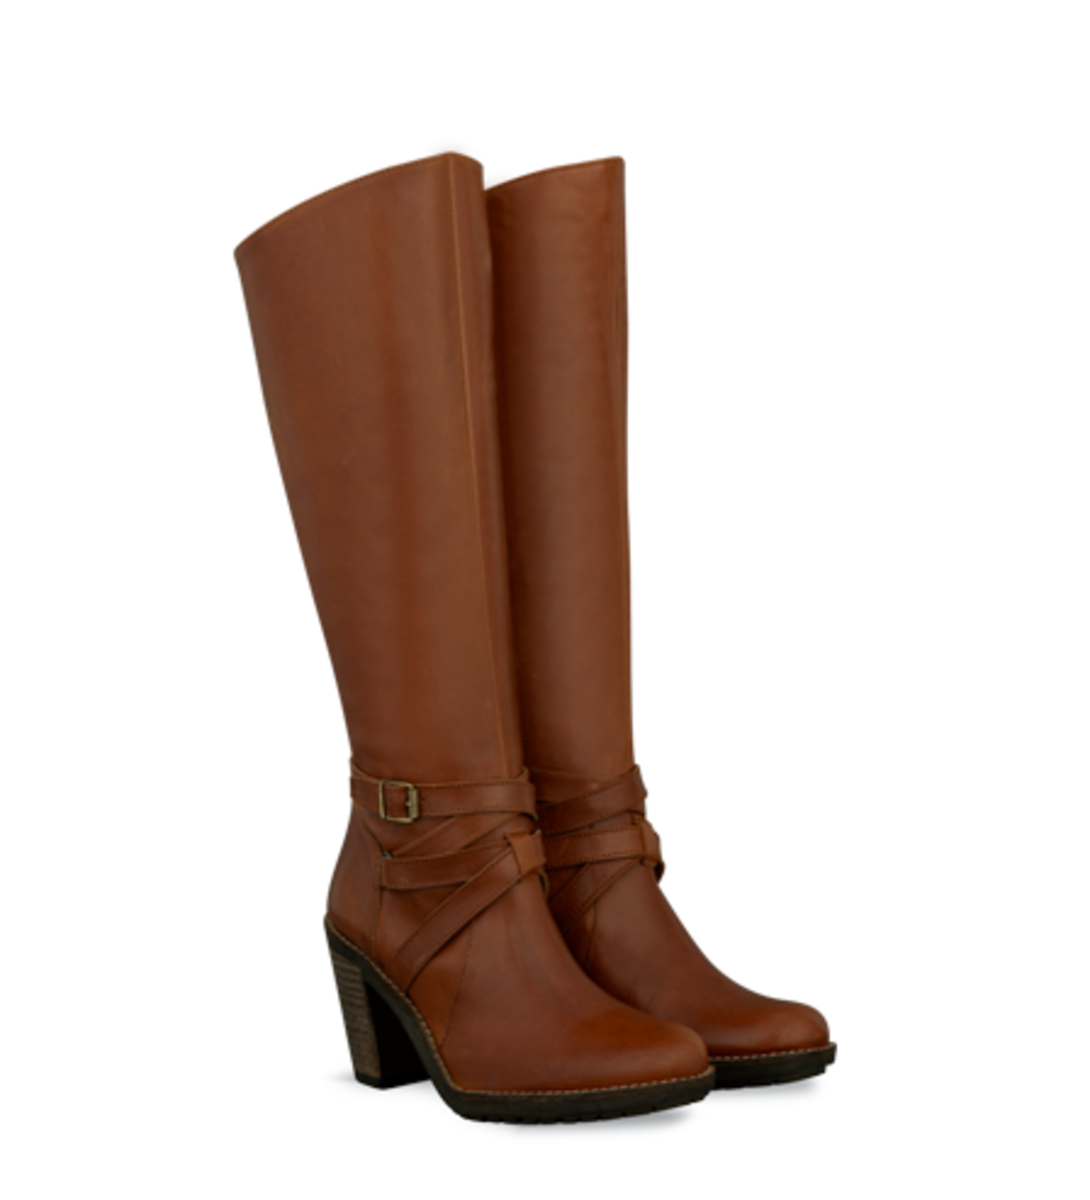 Duo's Helvin Asymmetric Cut Boots with Buckle Detail, in brown and black - $300